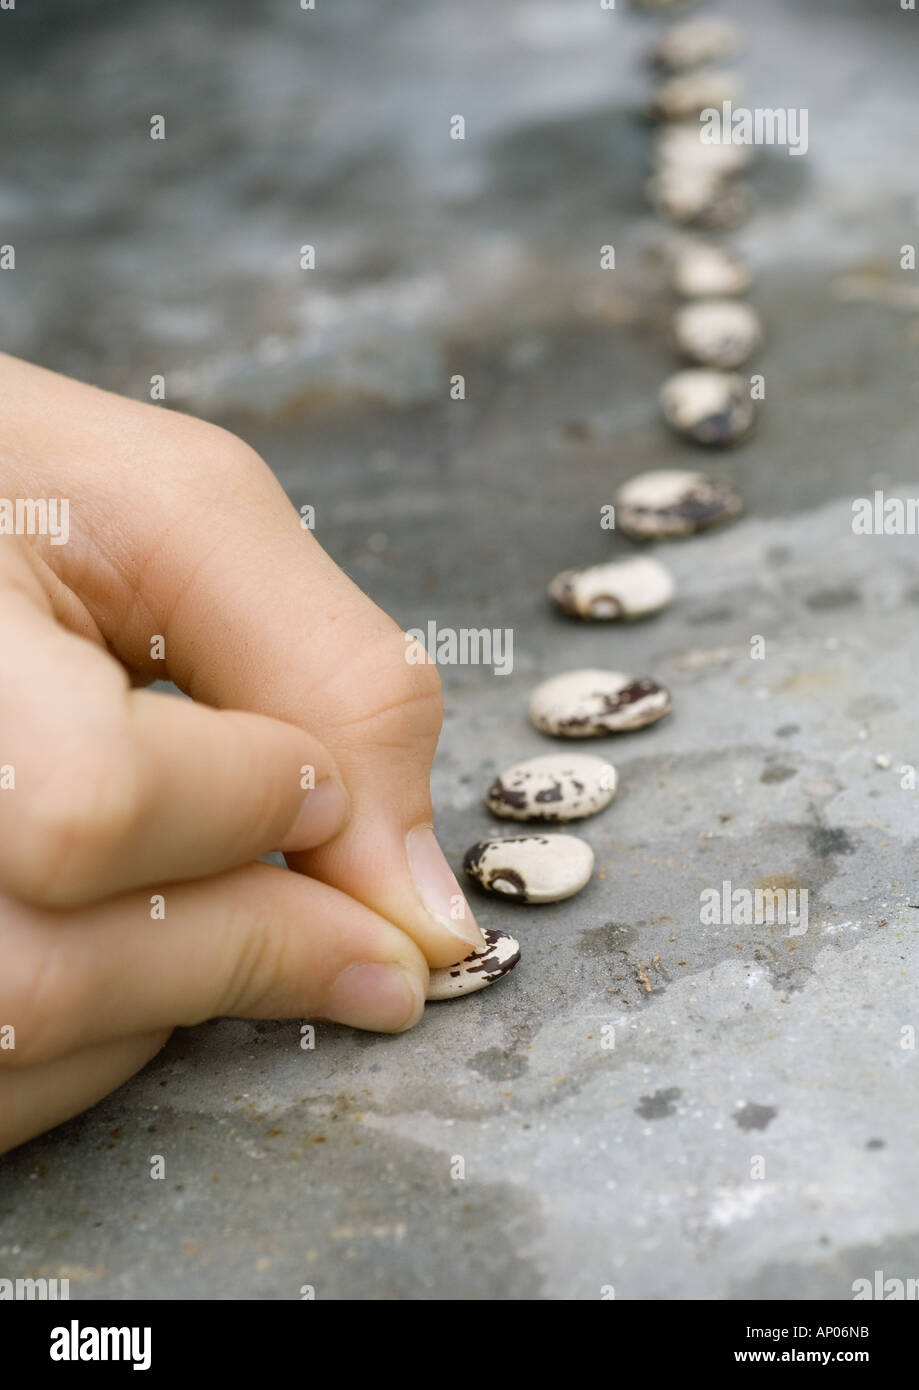 Hand placing seeds in a row - Stock Image